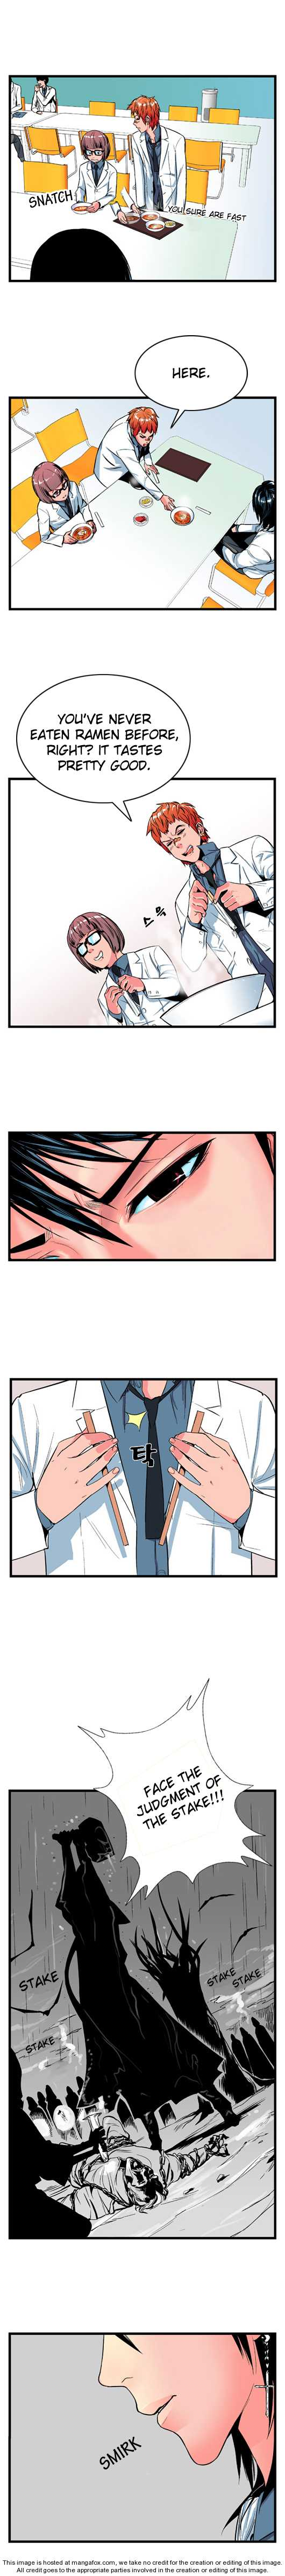 Noblesse 12 Page 3